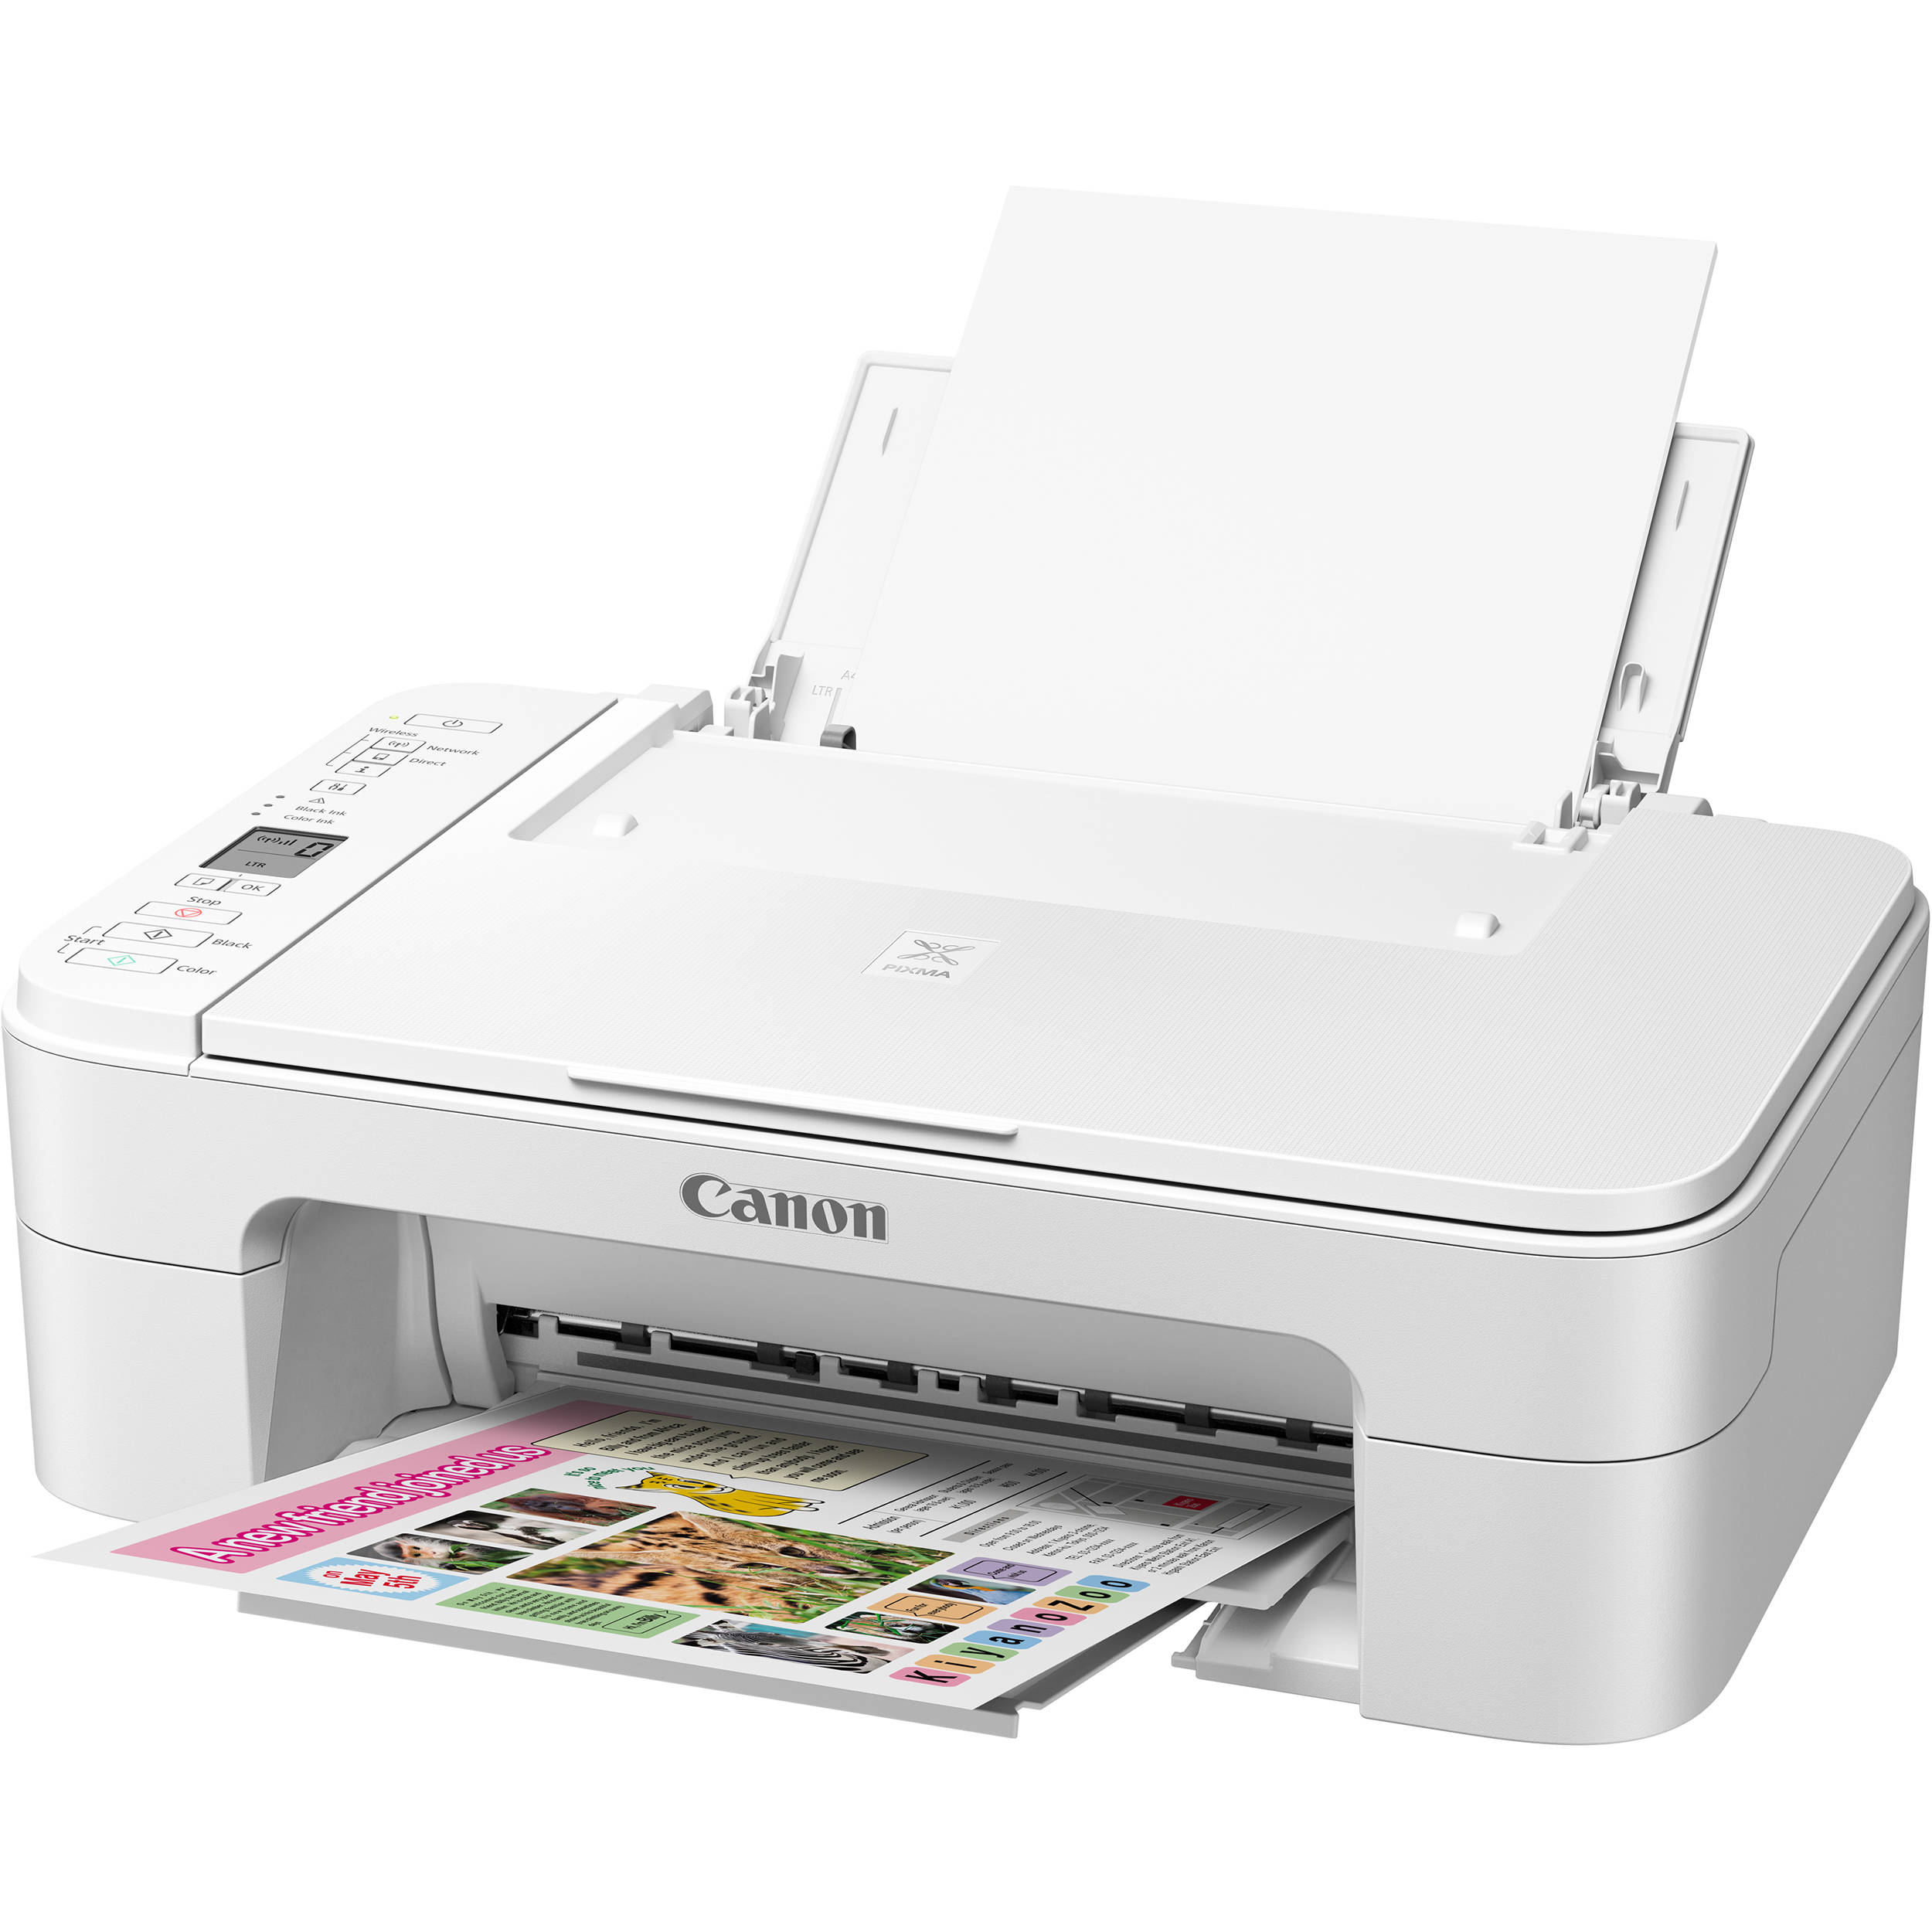 Canon Inkjet PIXUS 960i Printer Drivers for Windows 8